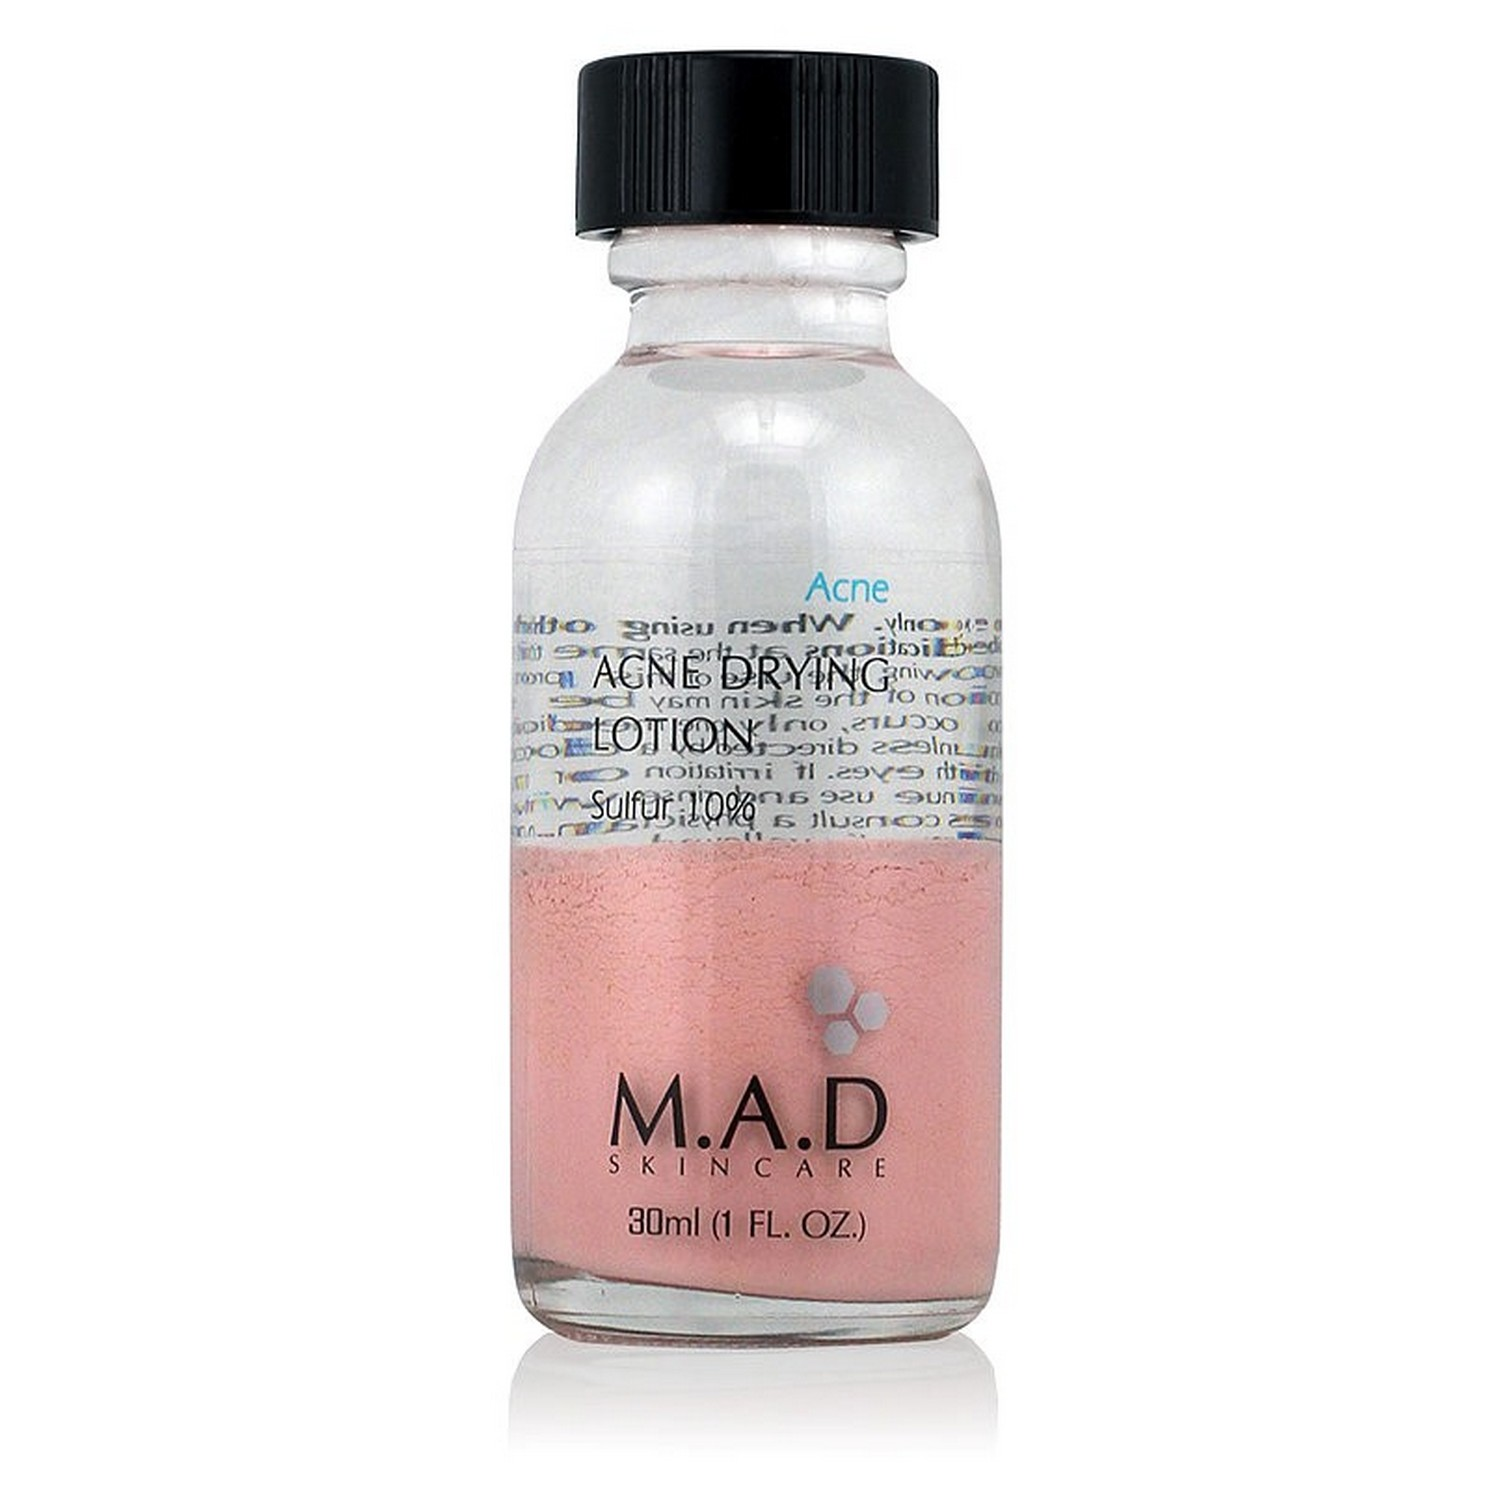 M.A.D SKINCARE ACNE DRYING LOTION Sulfur 10% (30 ml / 1.0 fl oz)